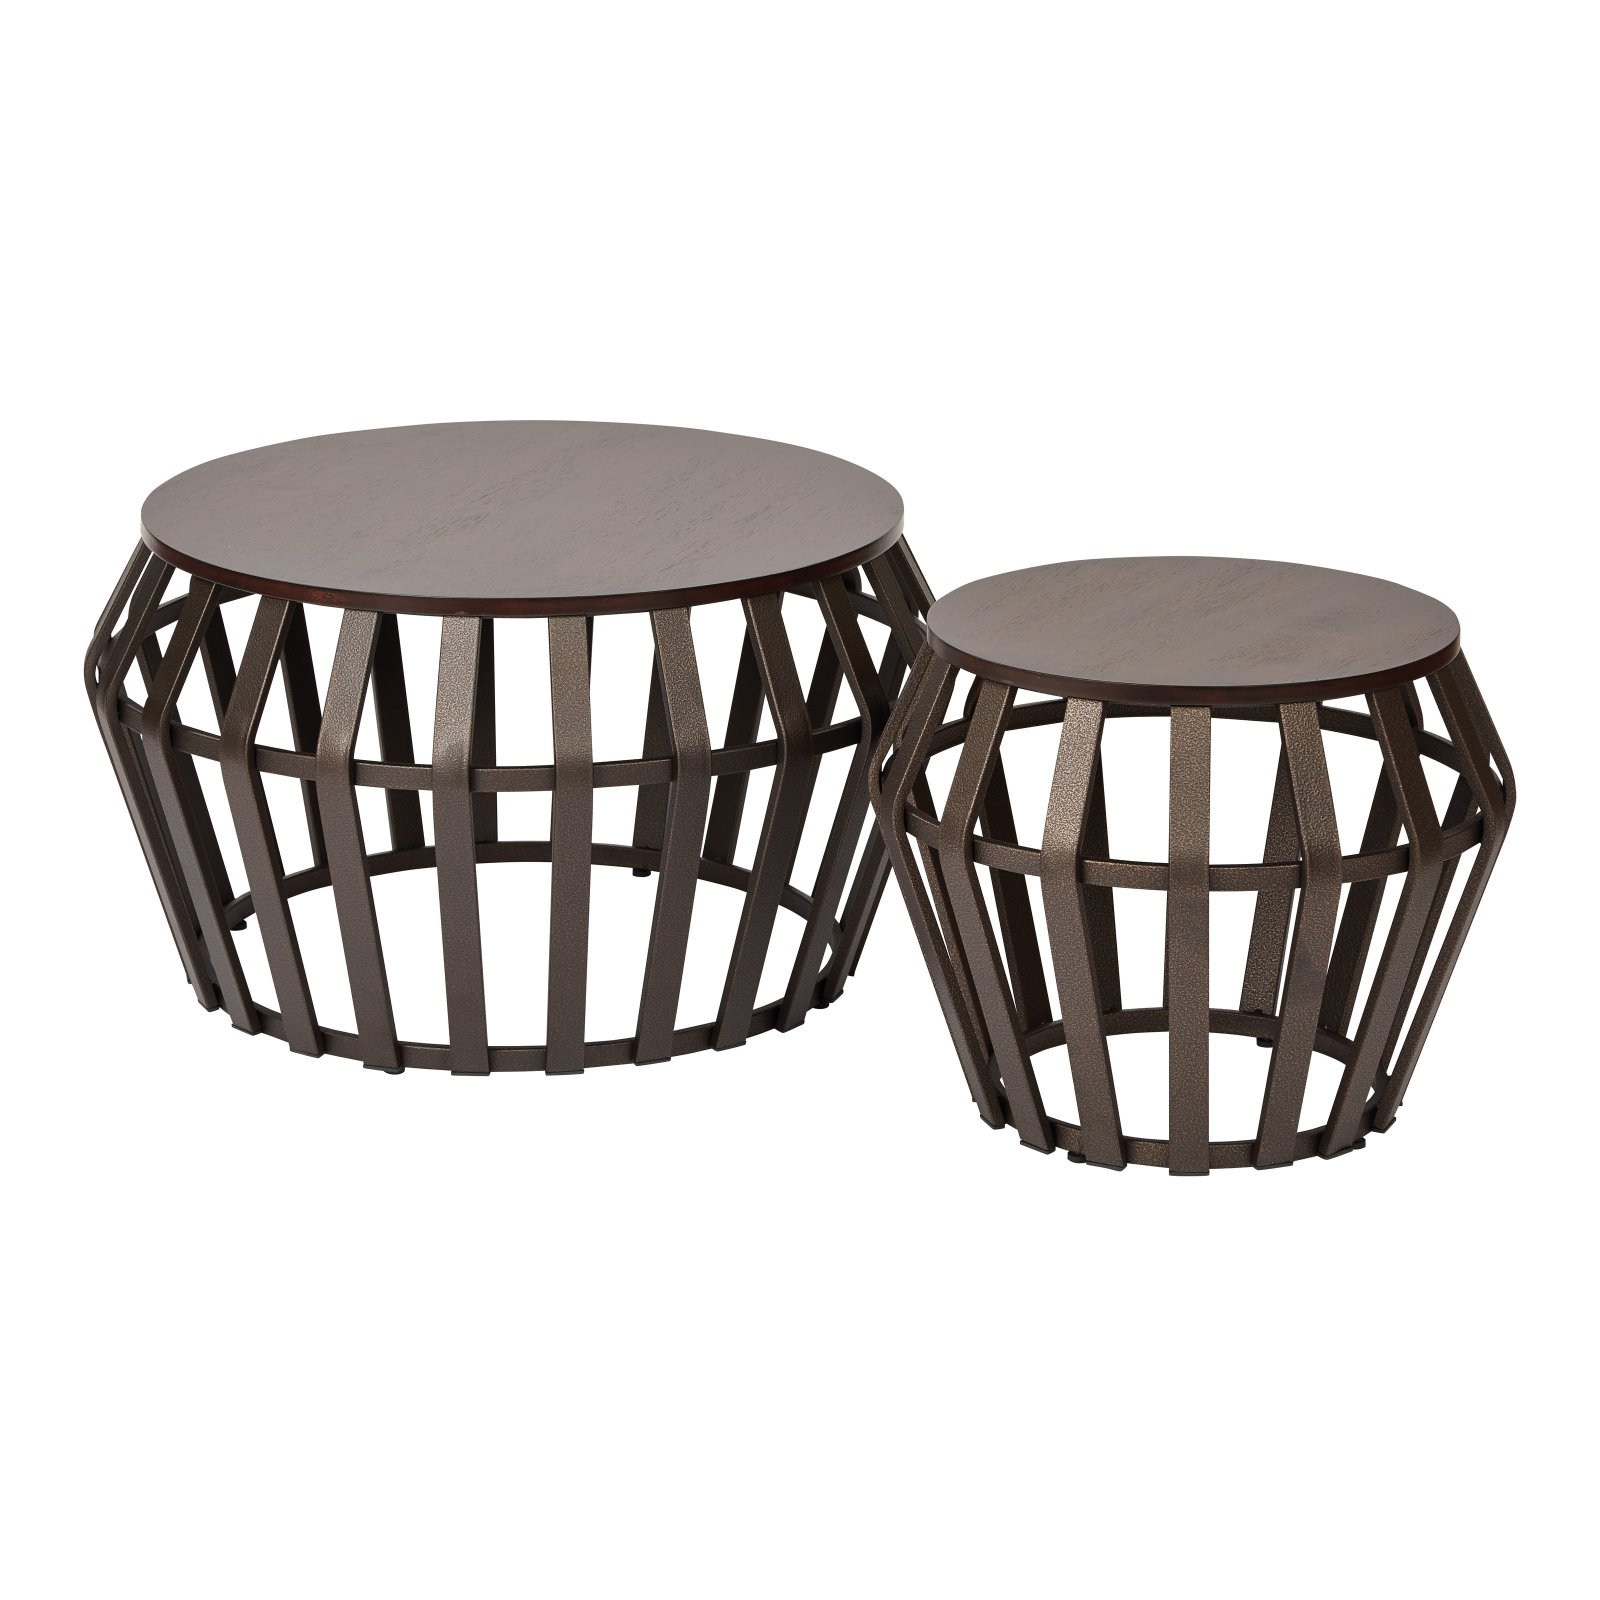 OSP Designs Solana Round Drum Accent Tables Set of 2 by Generic